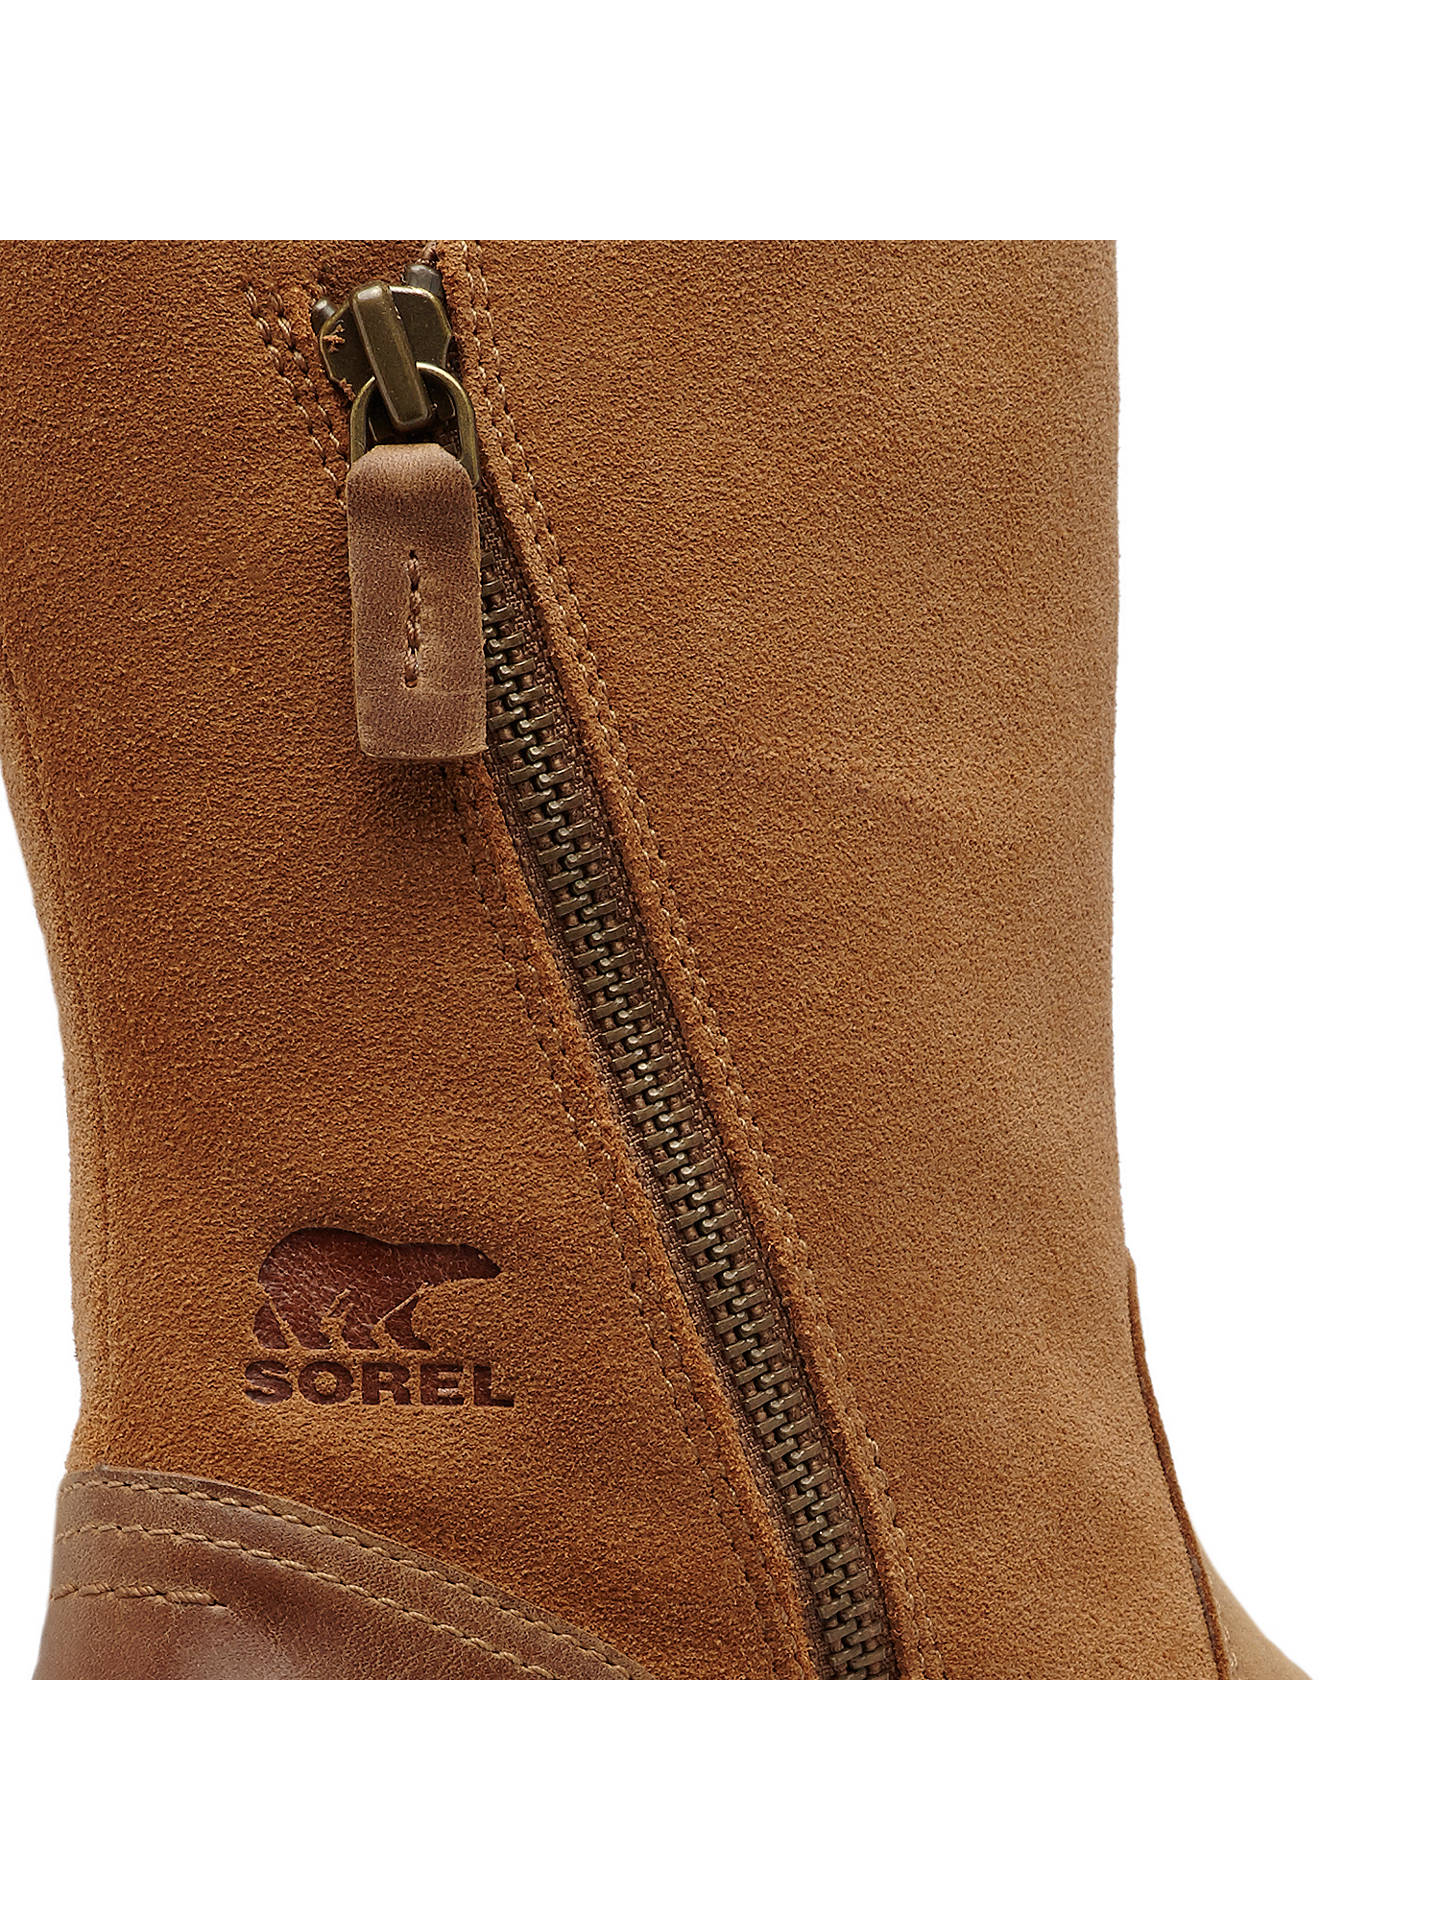 BuySorel Emelie Foldover Block Heel Ankle Snow Boots, Brown Suede, 6 Online at johnlewis.com